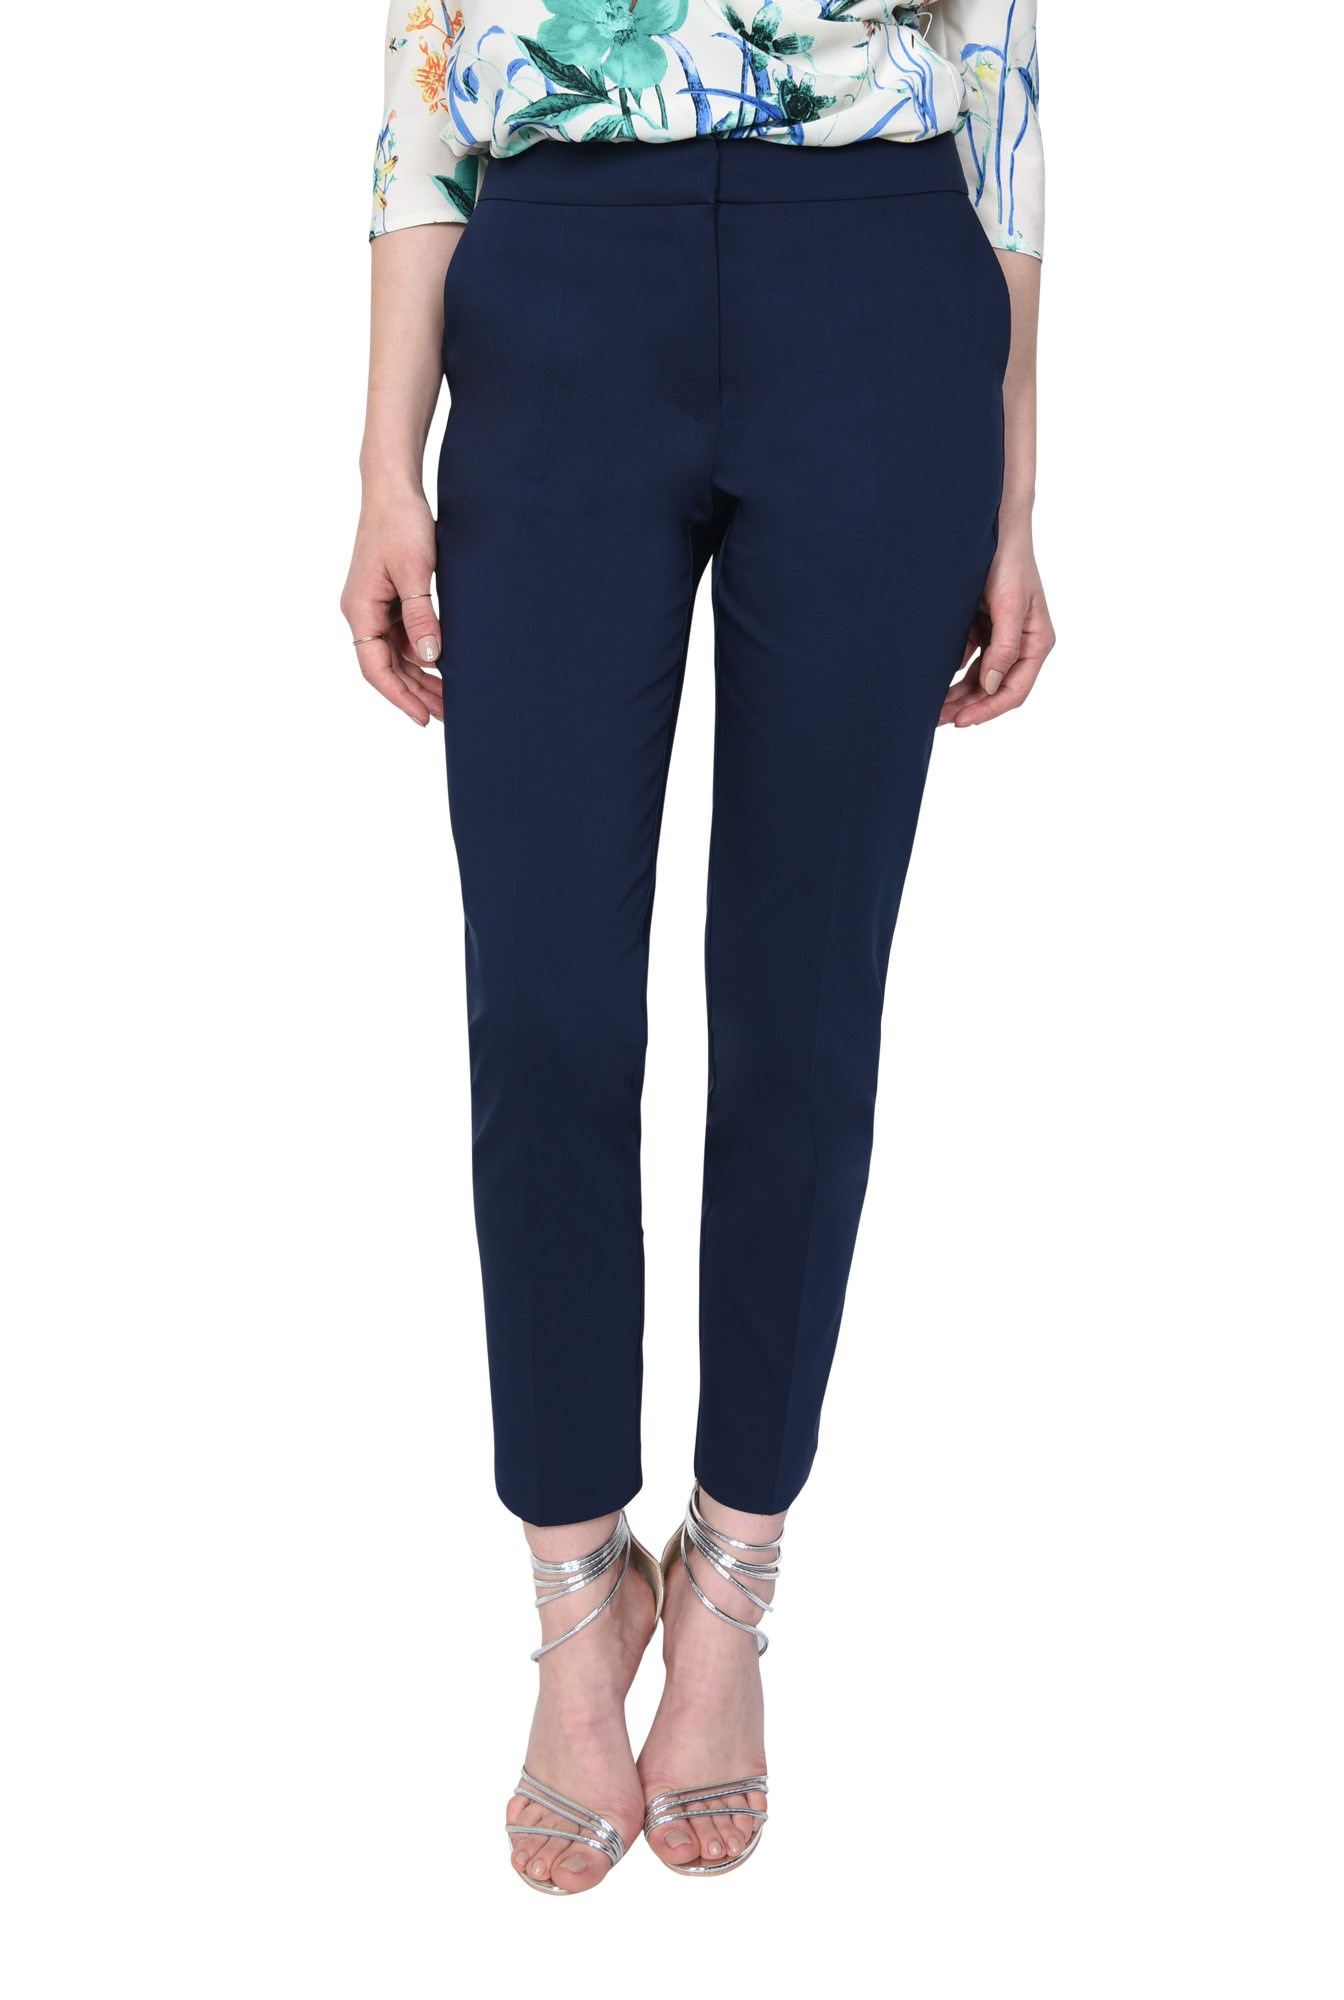 PANTALON OFFICE CONIC PT 144-BLEUMARIN